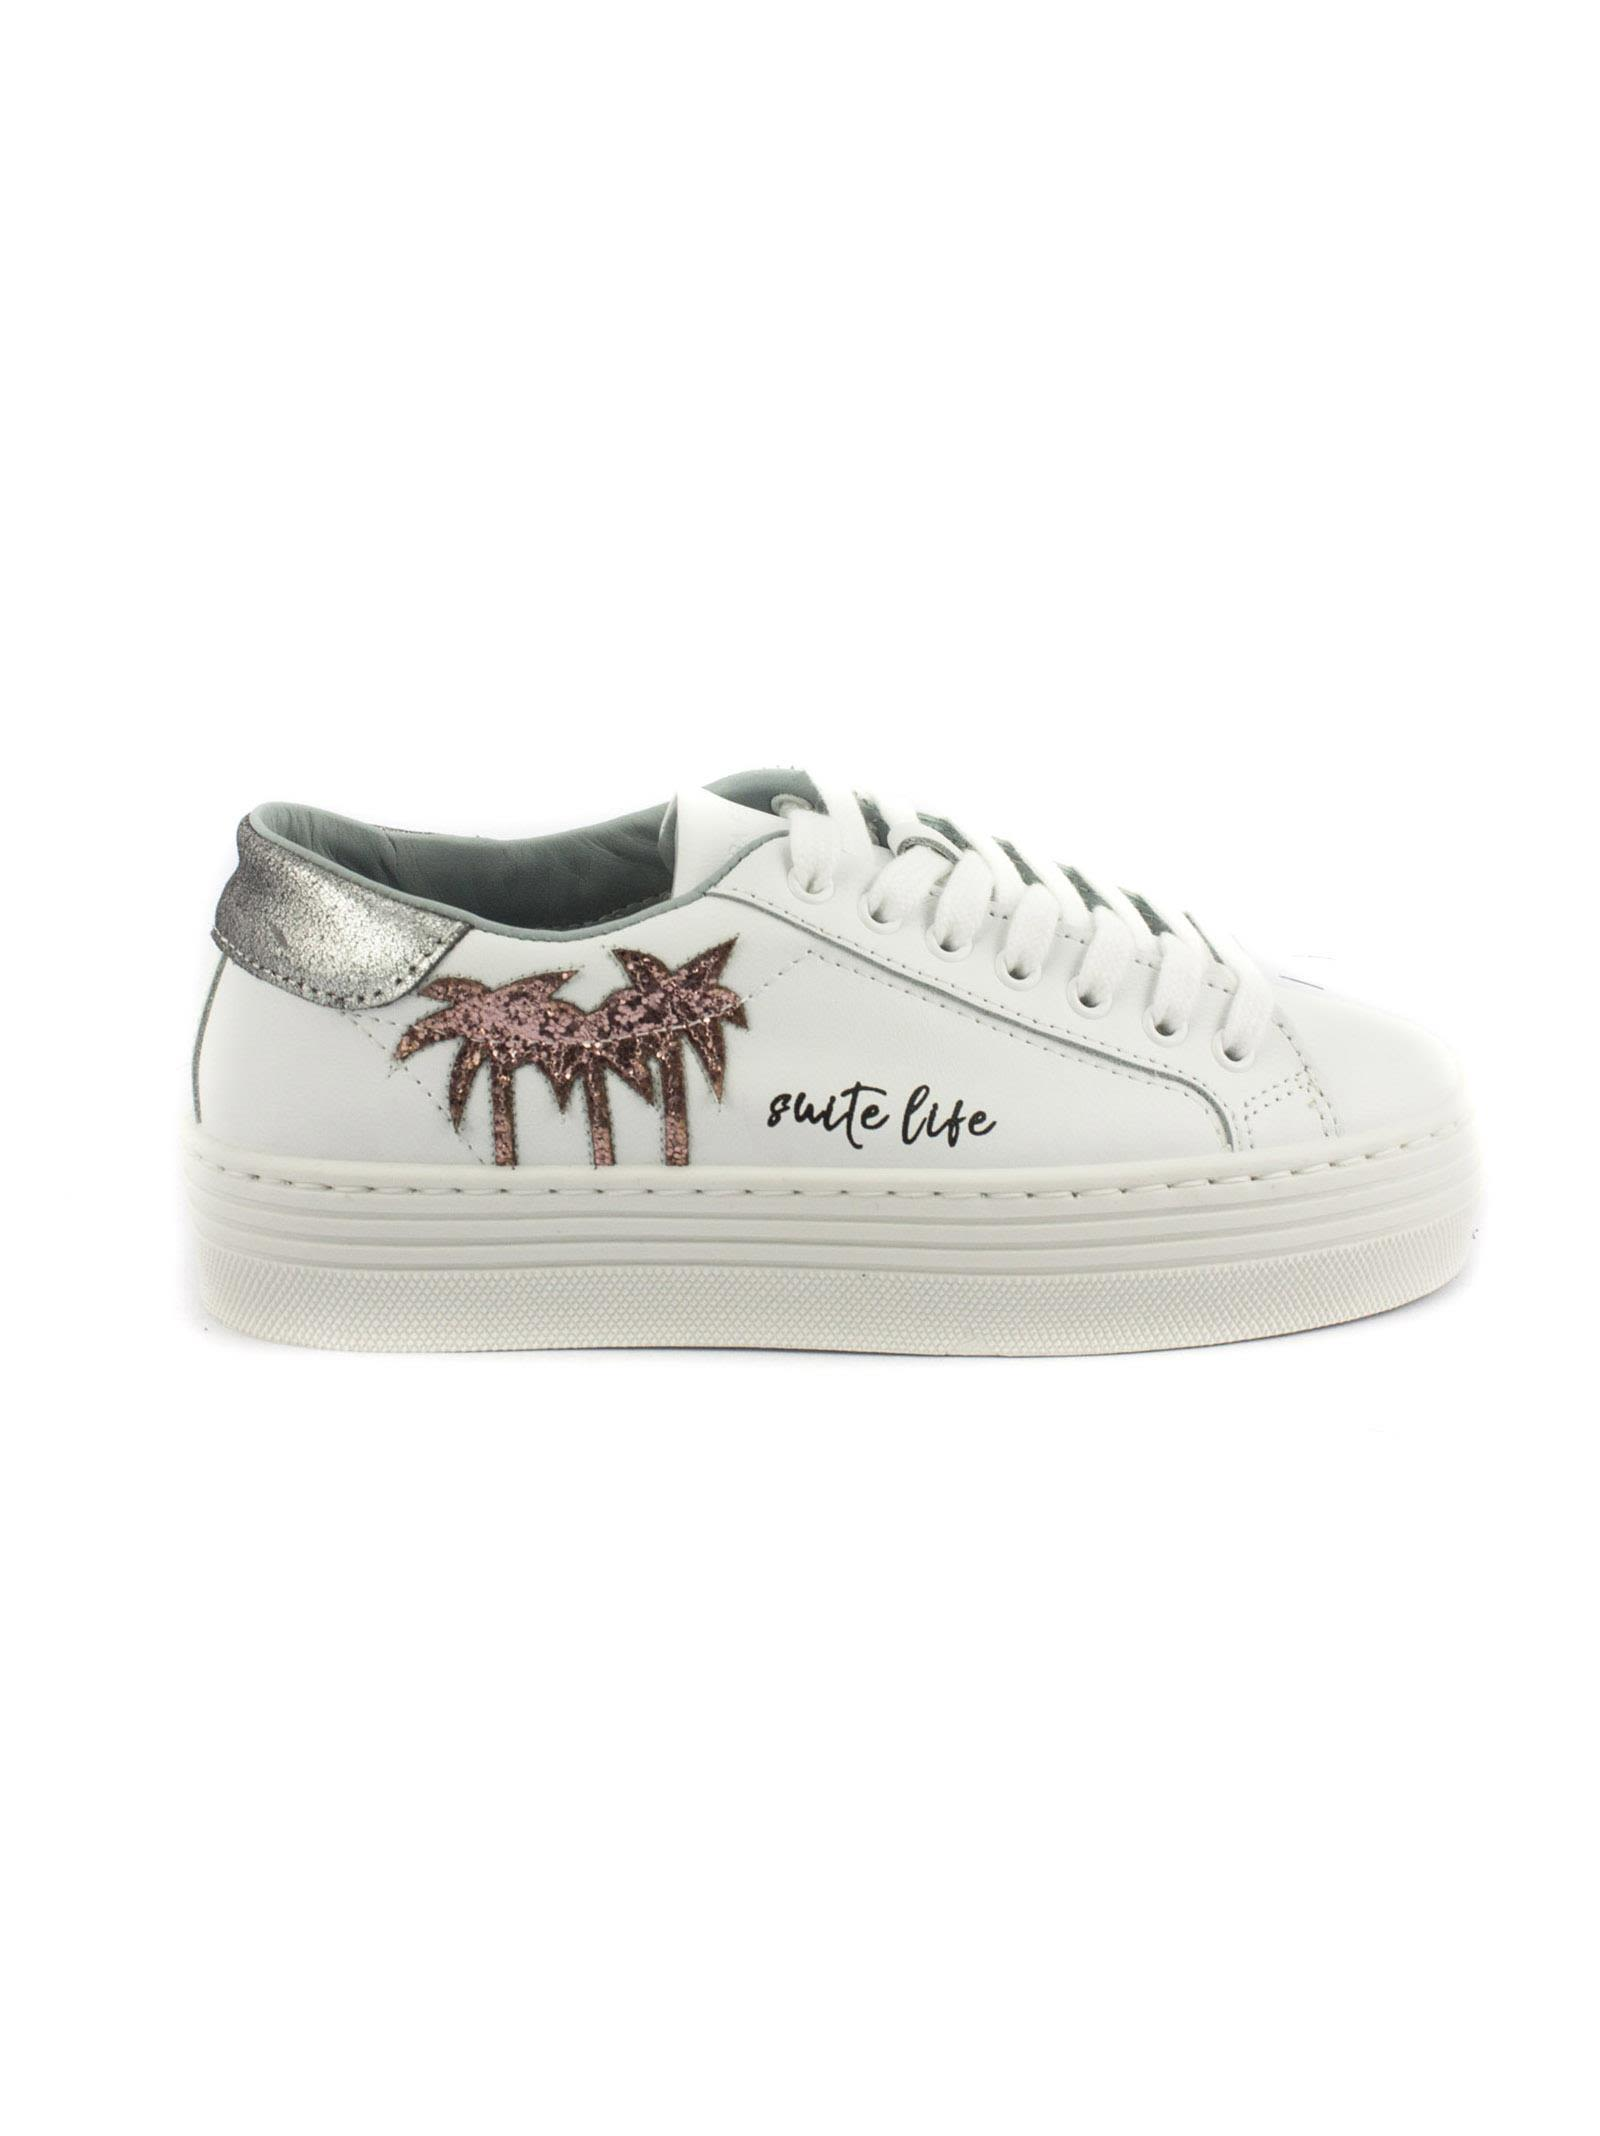 Chiara Ferragni White Leather Laced Sneakers With Pink Palms Shop Offer Sale Online Cheap Sale Low Shipping Fee Buy Cheap Shop Free Shipping Shopping Online Newest Online 4T6ae